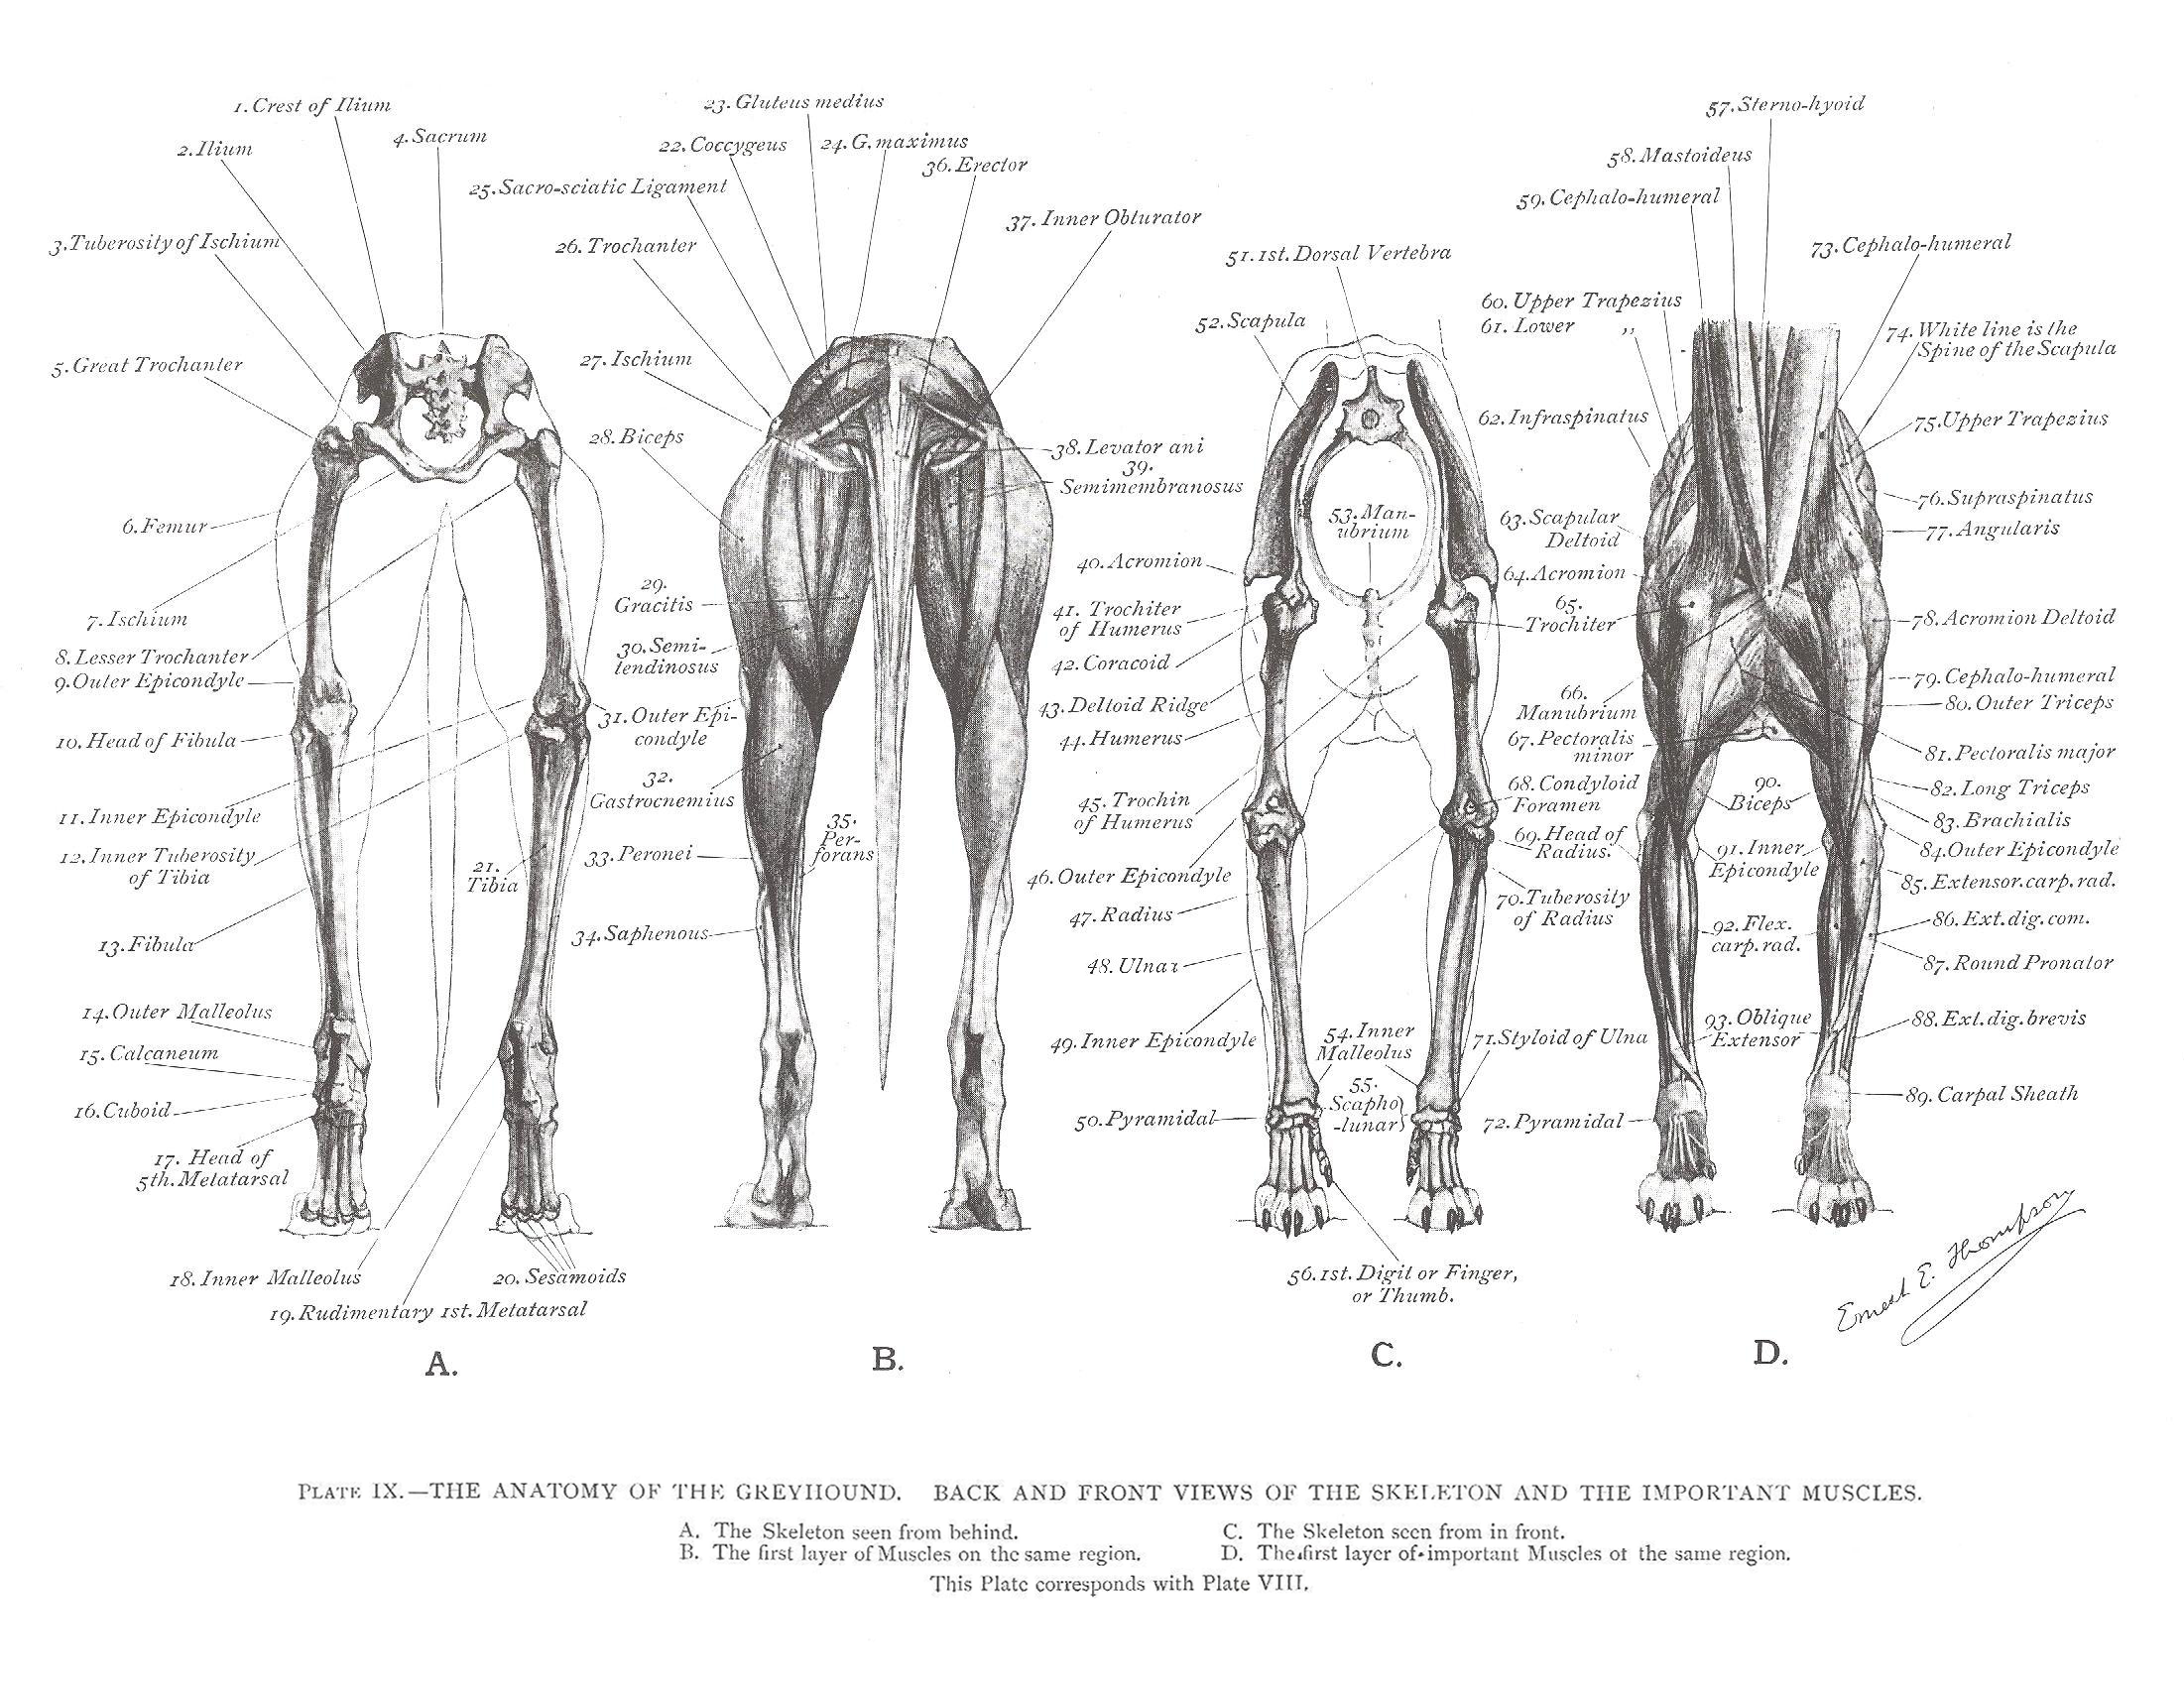 Greyhound Anatomy Diagram - Back and Front Views of the Skeleton and ...